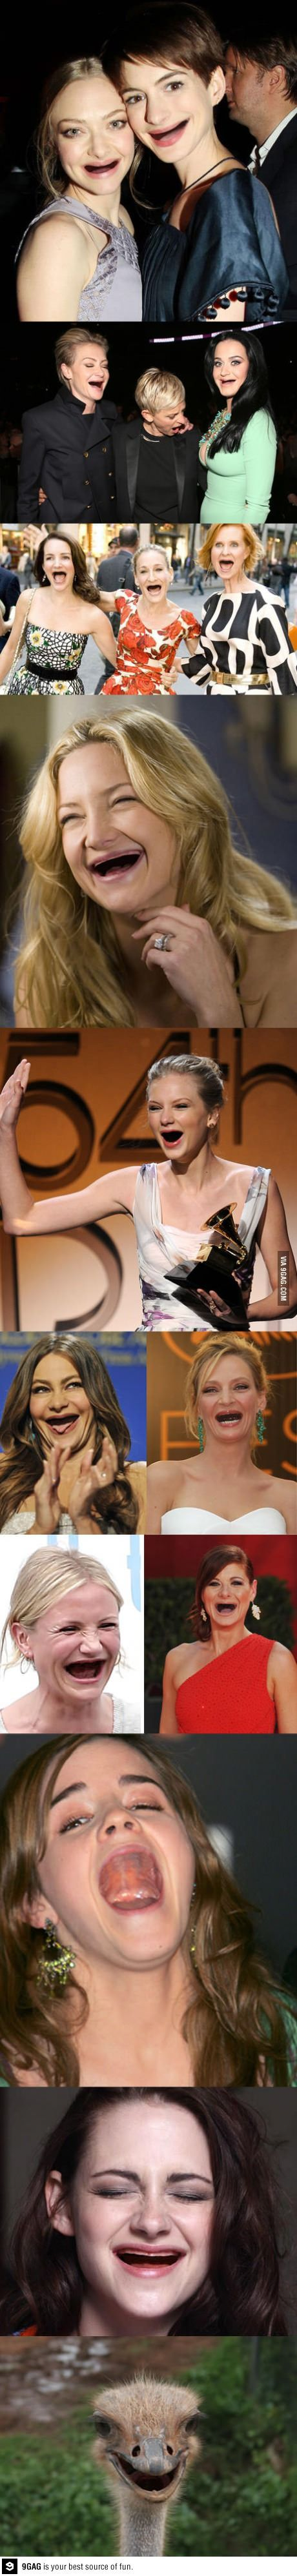 Teeth- They make a difference. Celebs without teeth